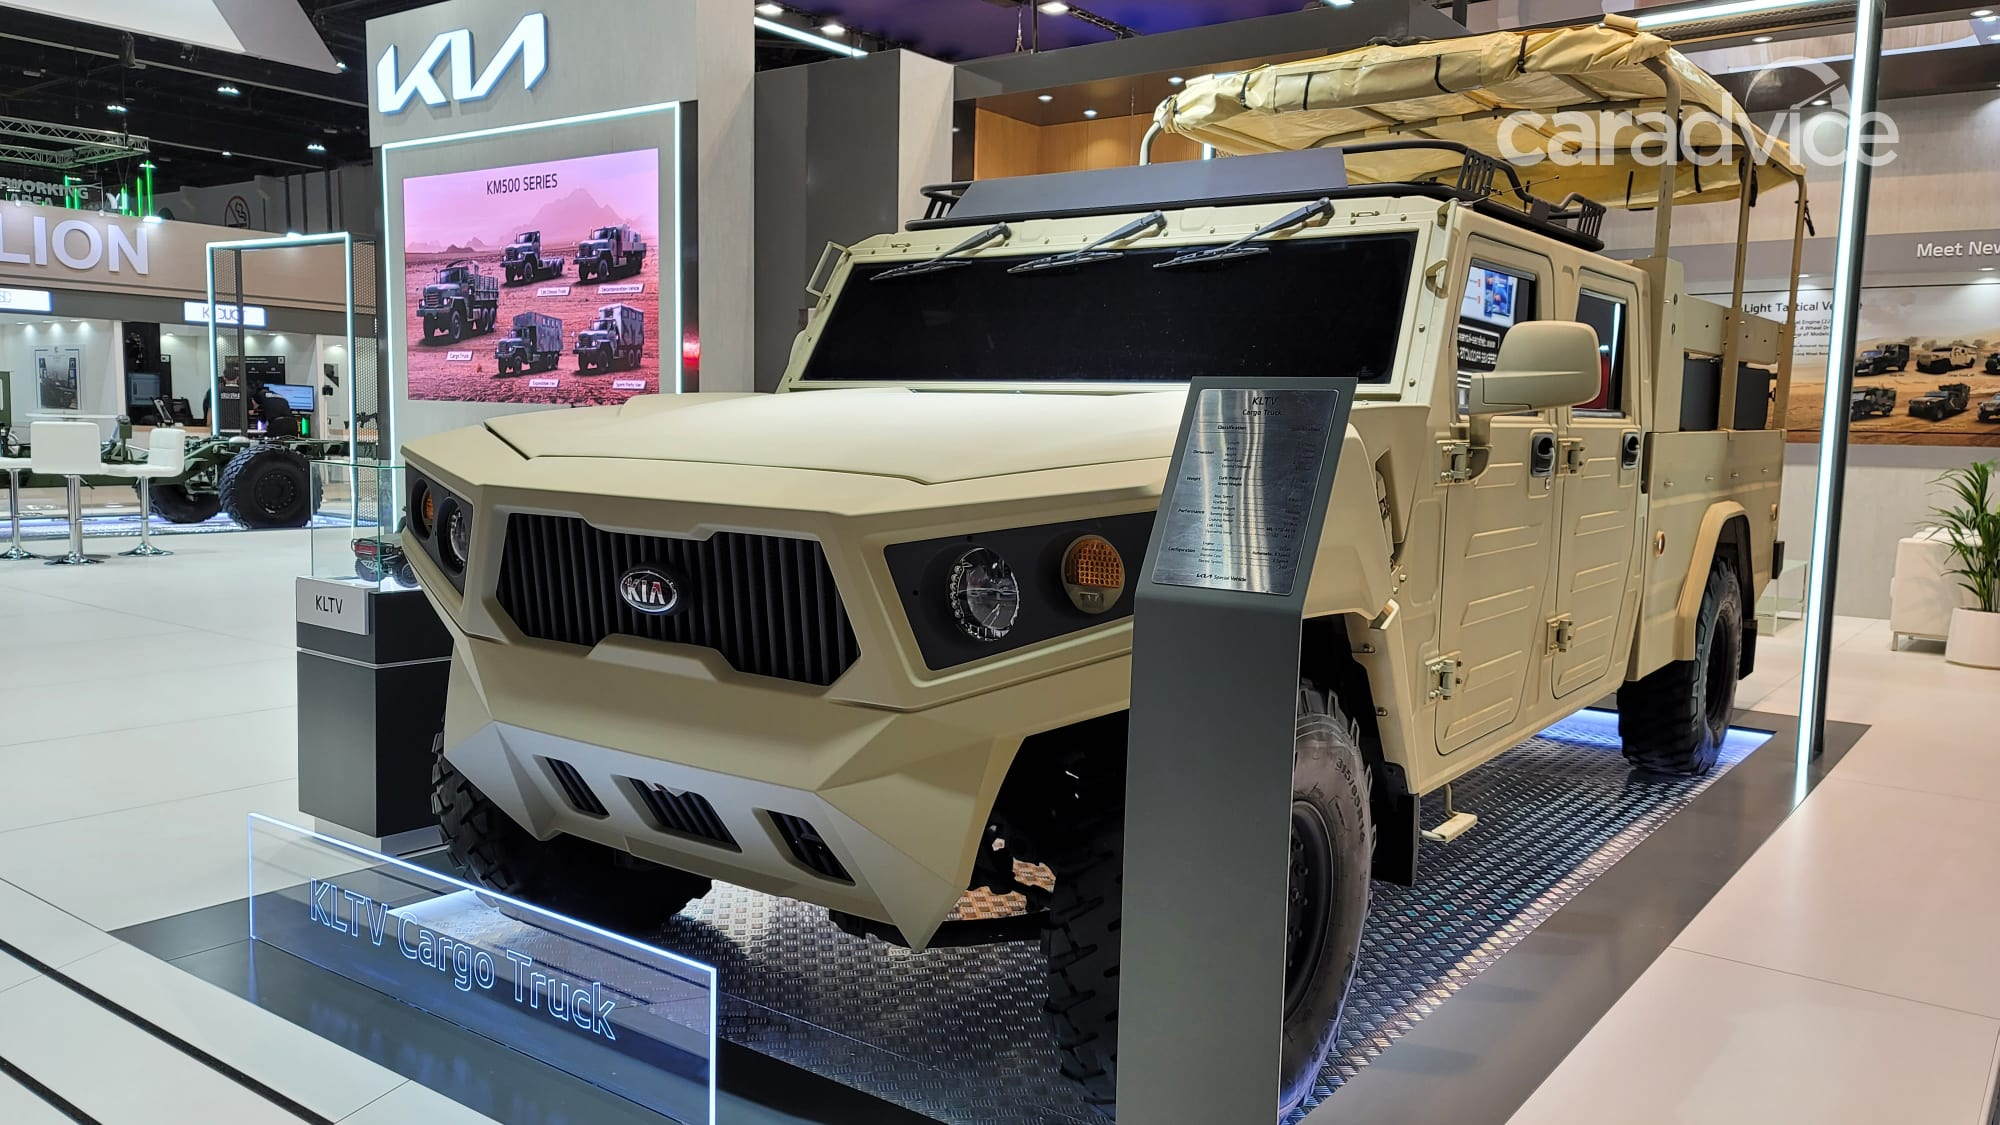 Kia's Hummer rival: Light Tactical Cargo Truck military concept unveiled - 2 of 2